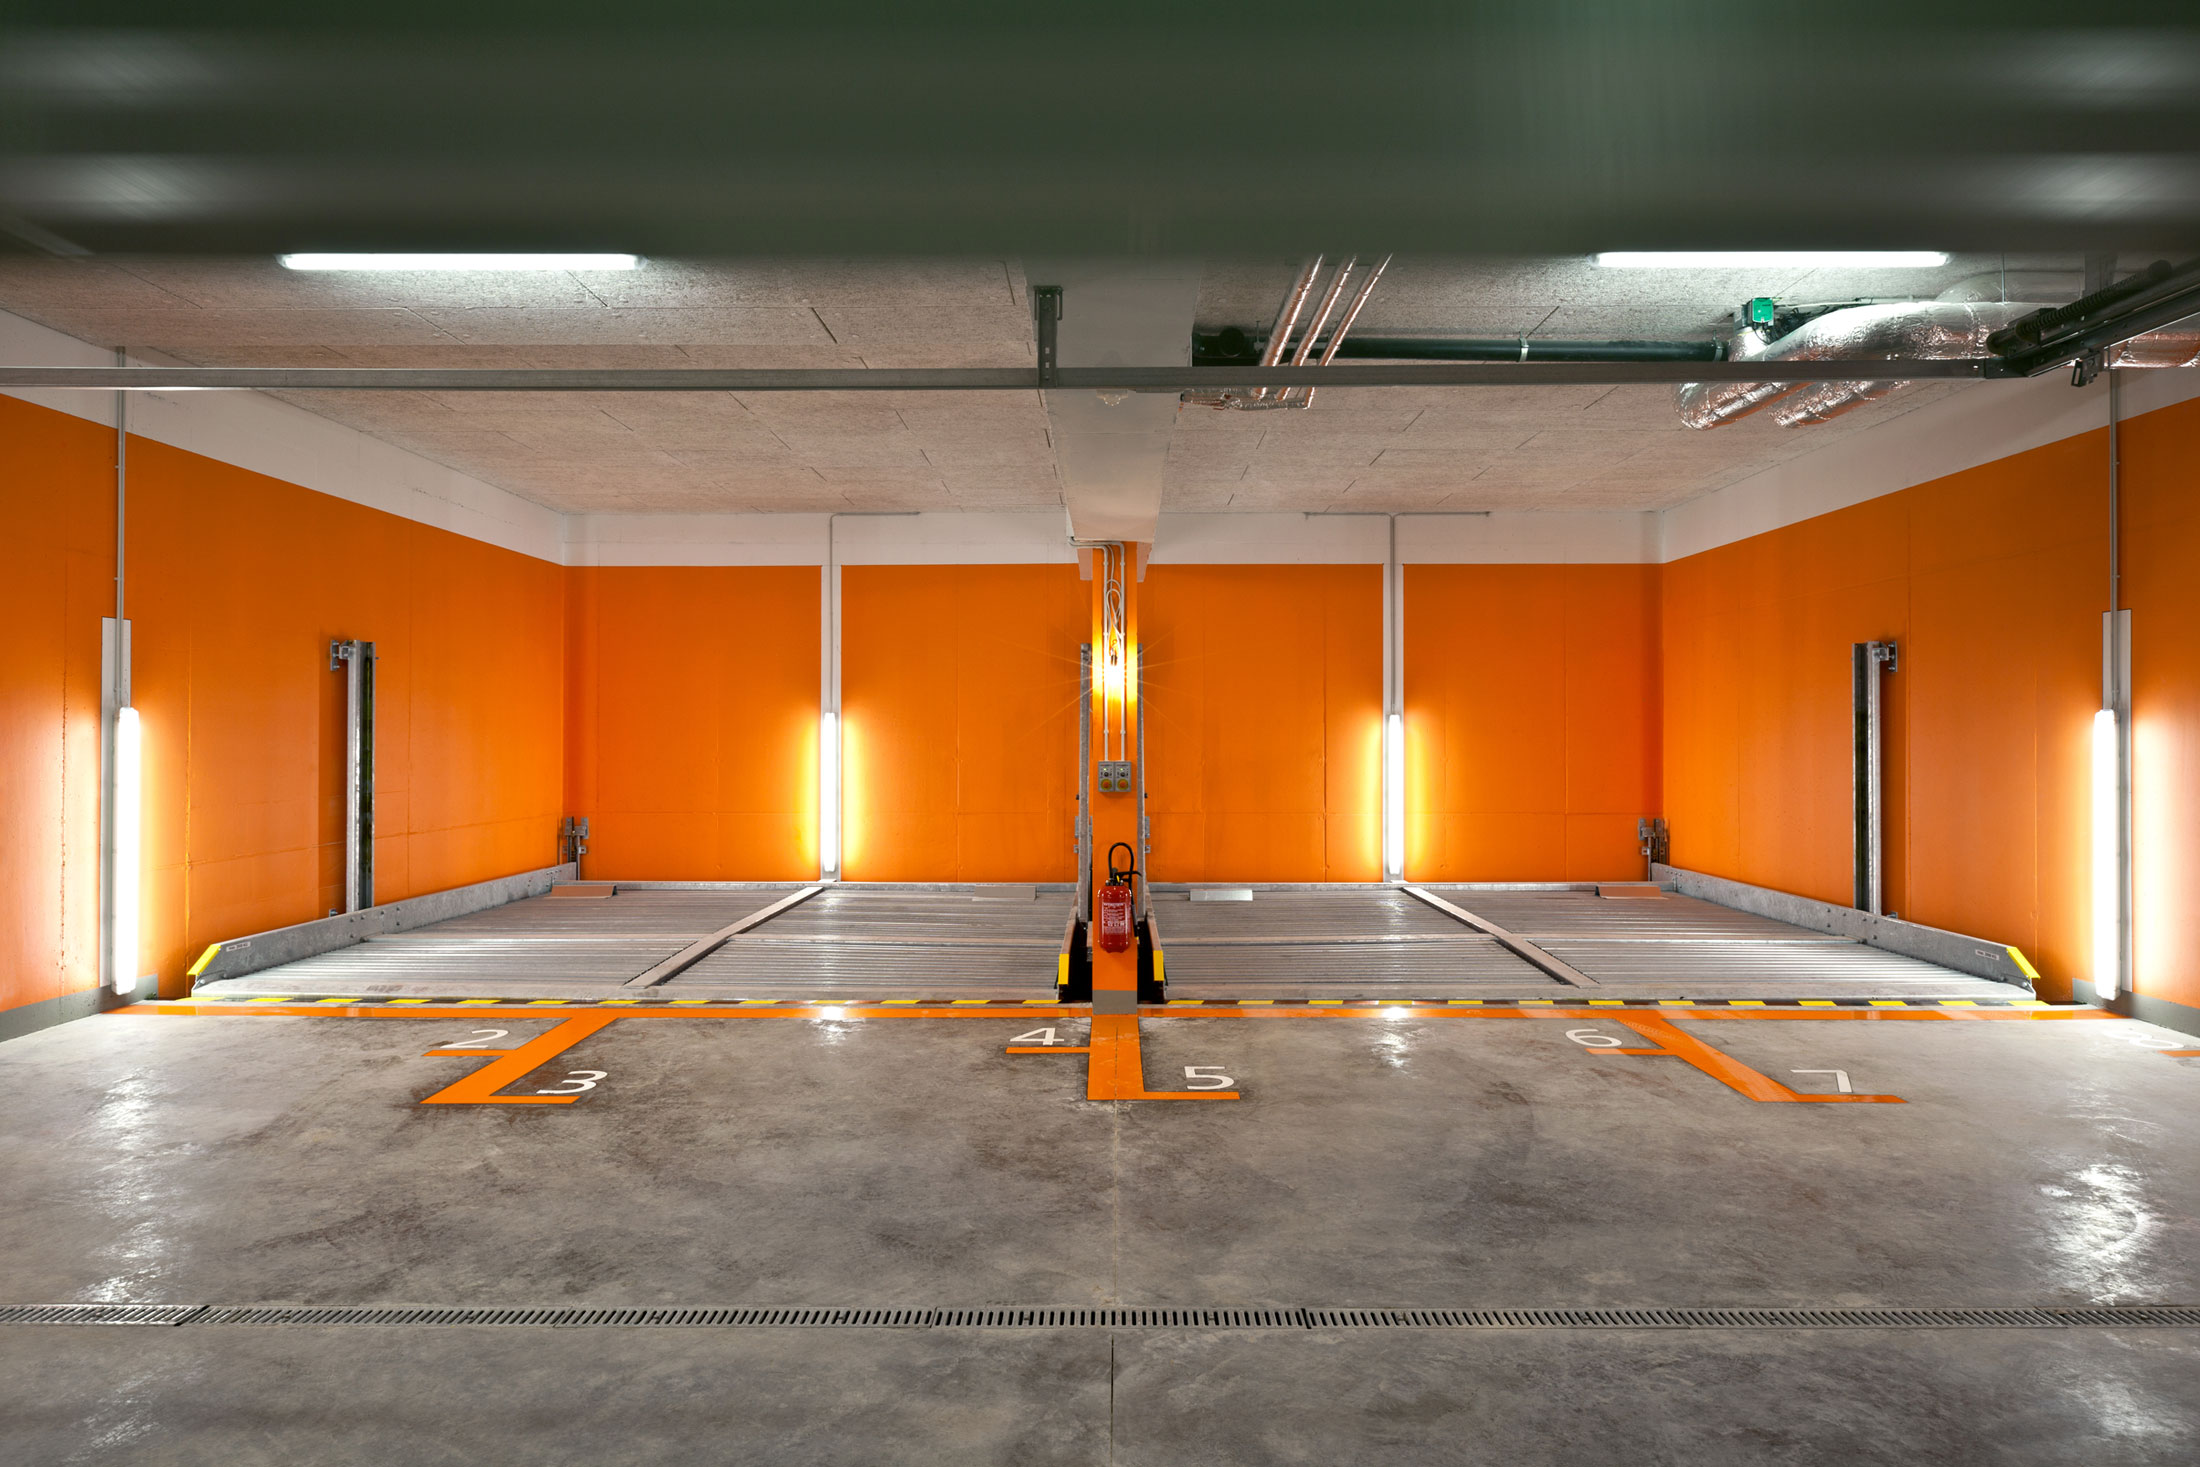 Commercial Painting   RazorClean Painting Company